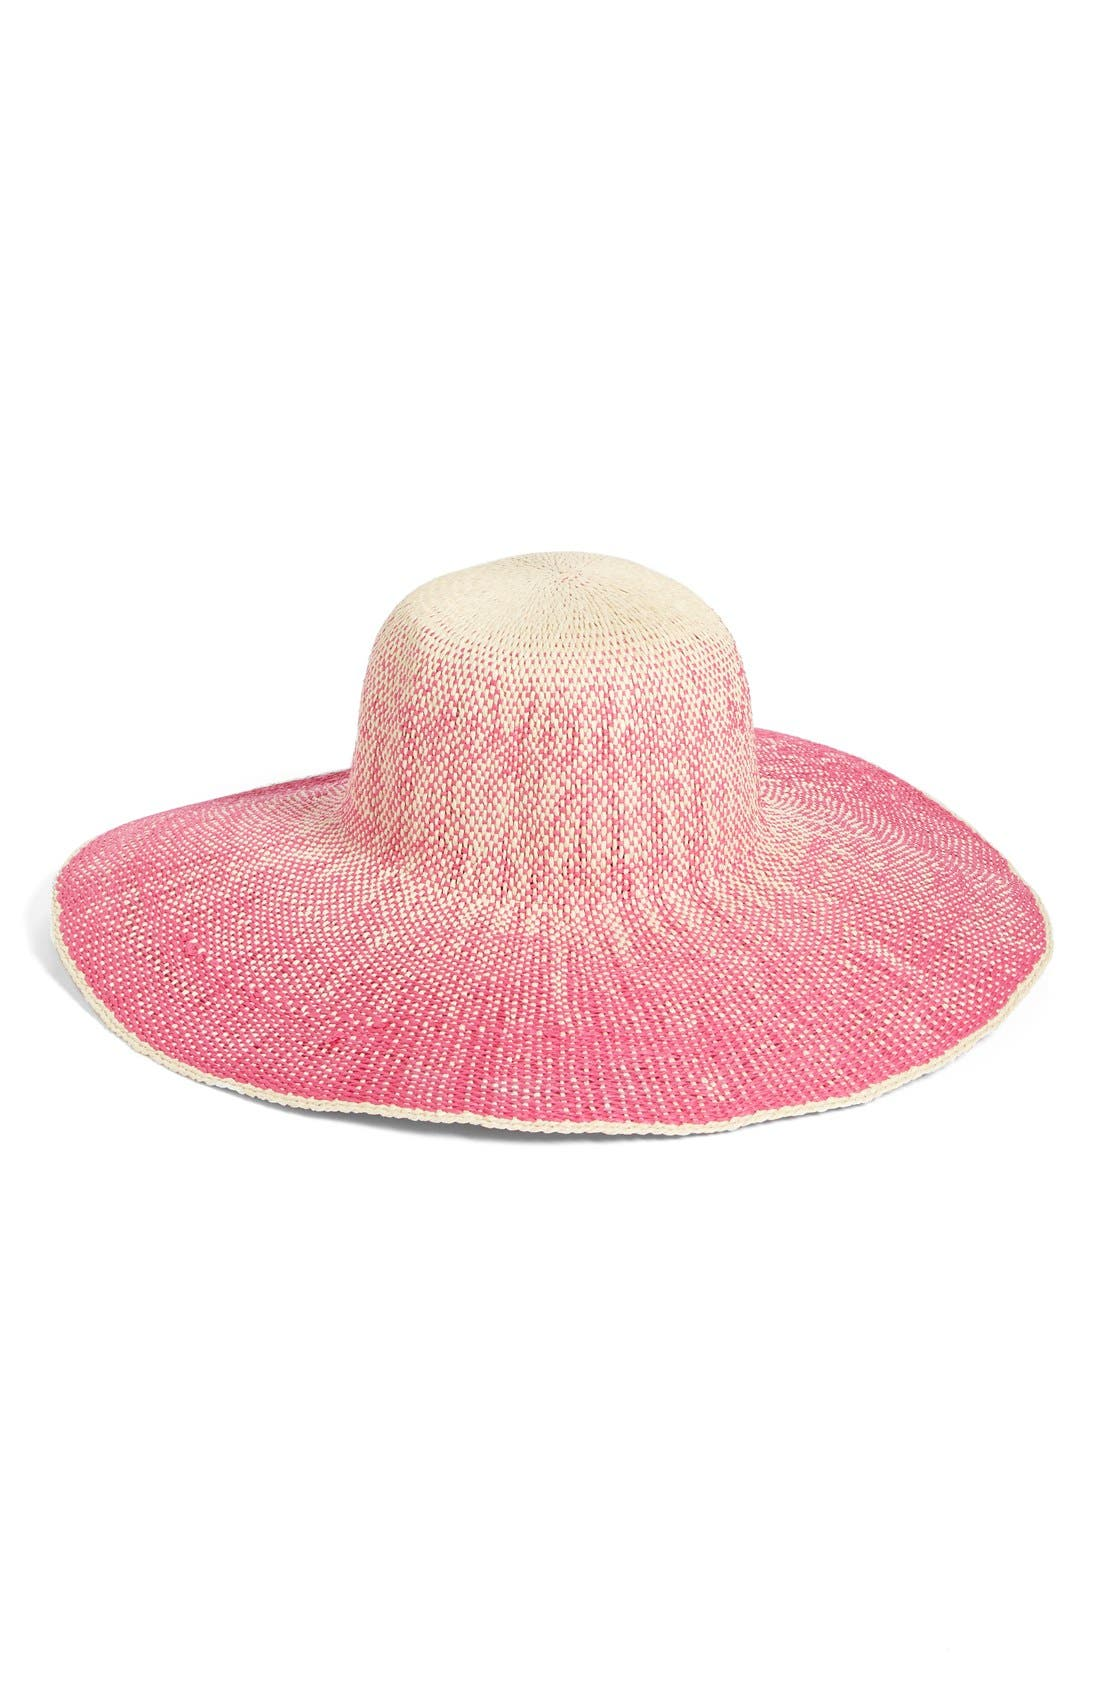 Alternate Image 2  - San Diego Hat Ombré Wide Brim Sun Hat